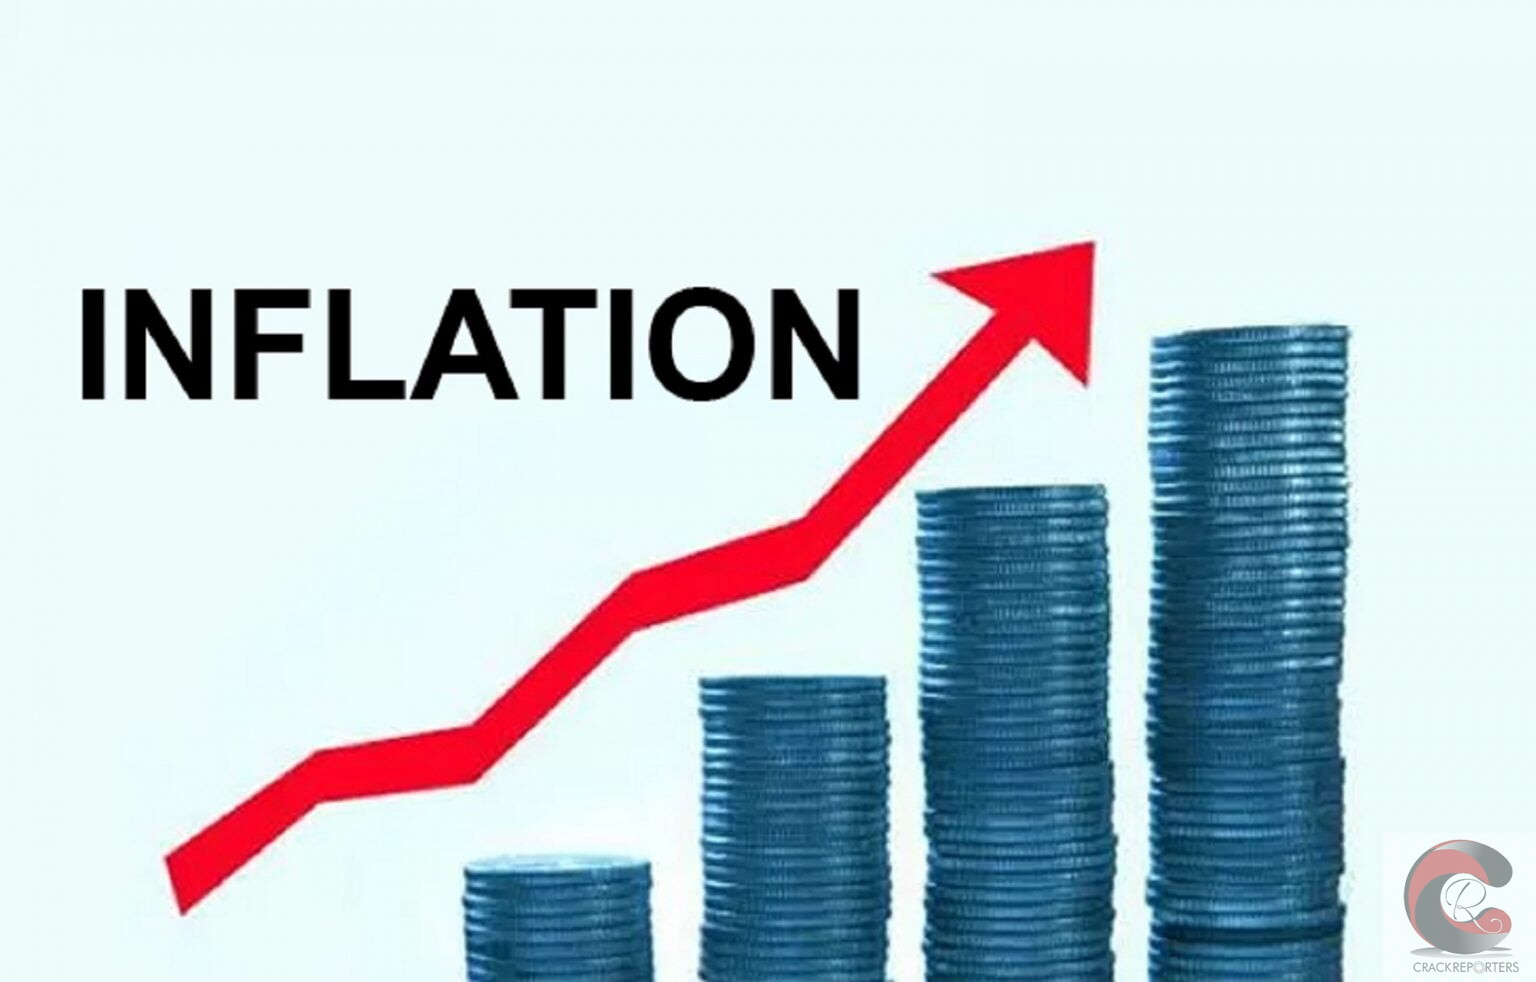 Nigeria's inflation rate hits 18.17% – highest in over four years - Crack  Reporters